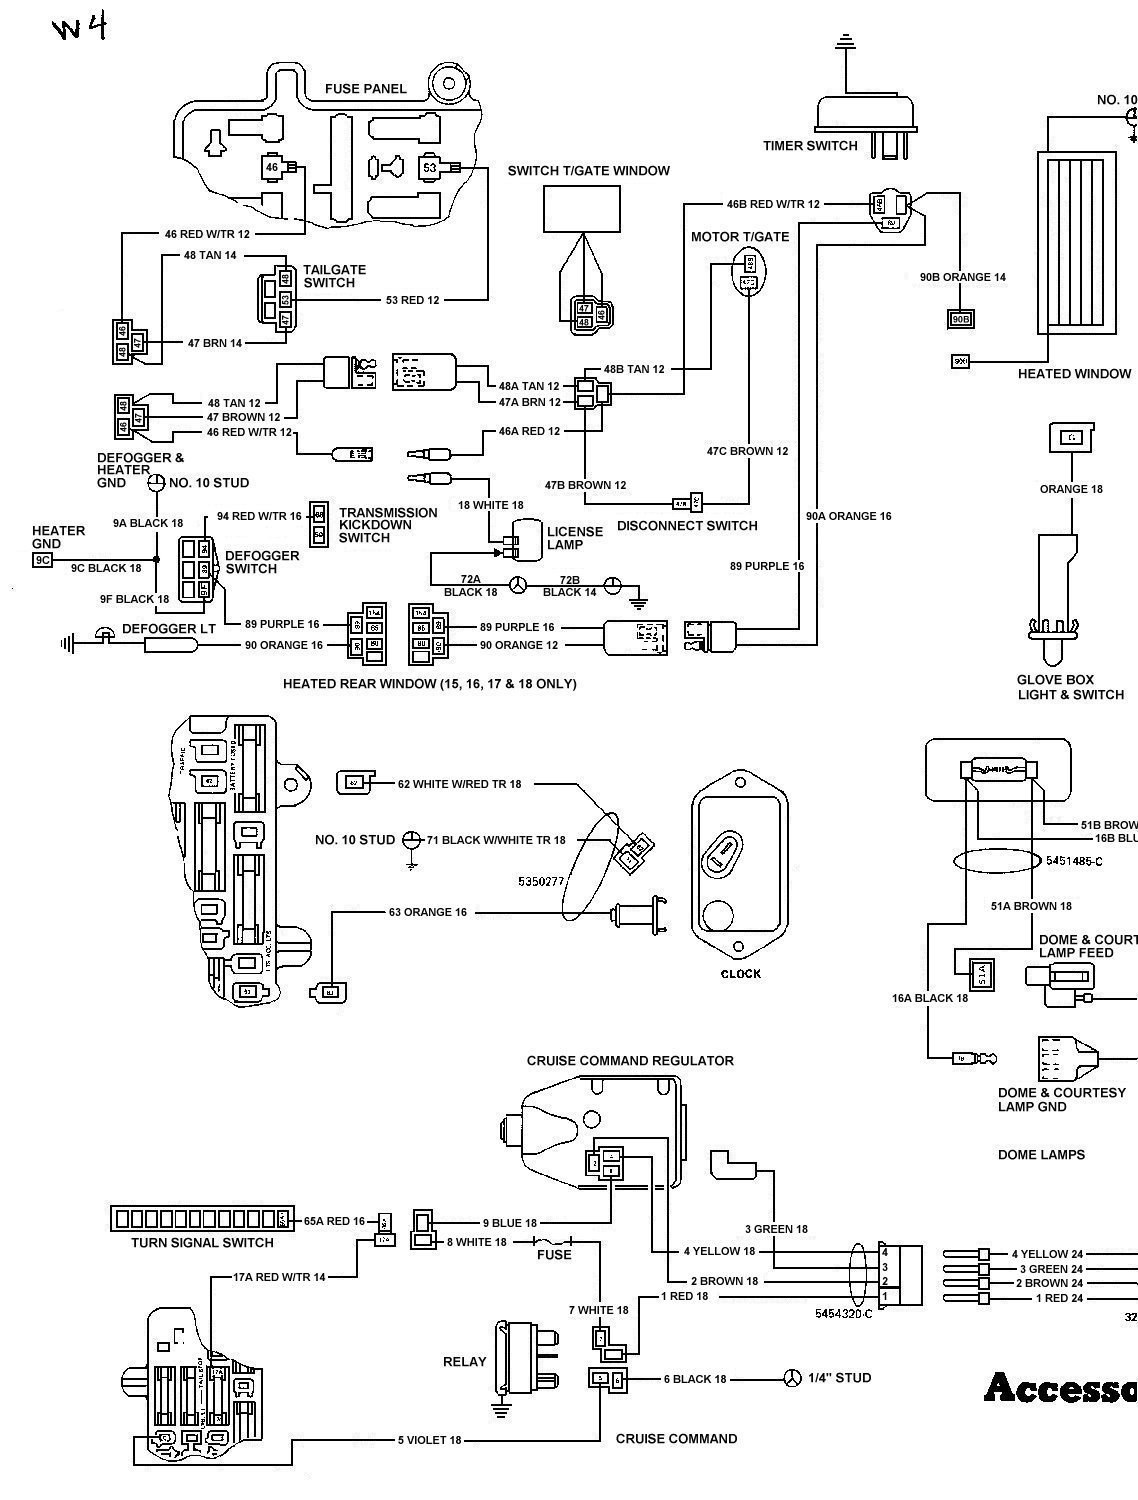 1976 jeep cj7 ignition wiring | wiring library 1982 cj5 heater wiring diagram 1977 cj5 heater diagram #14